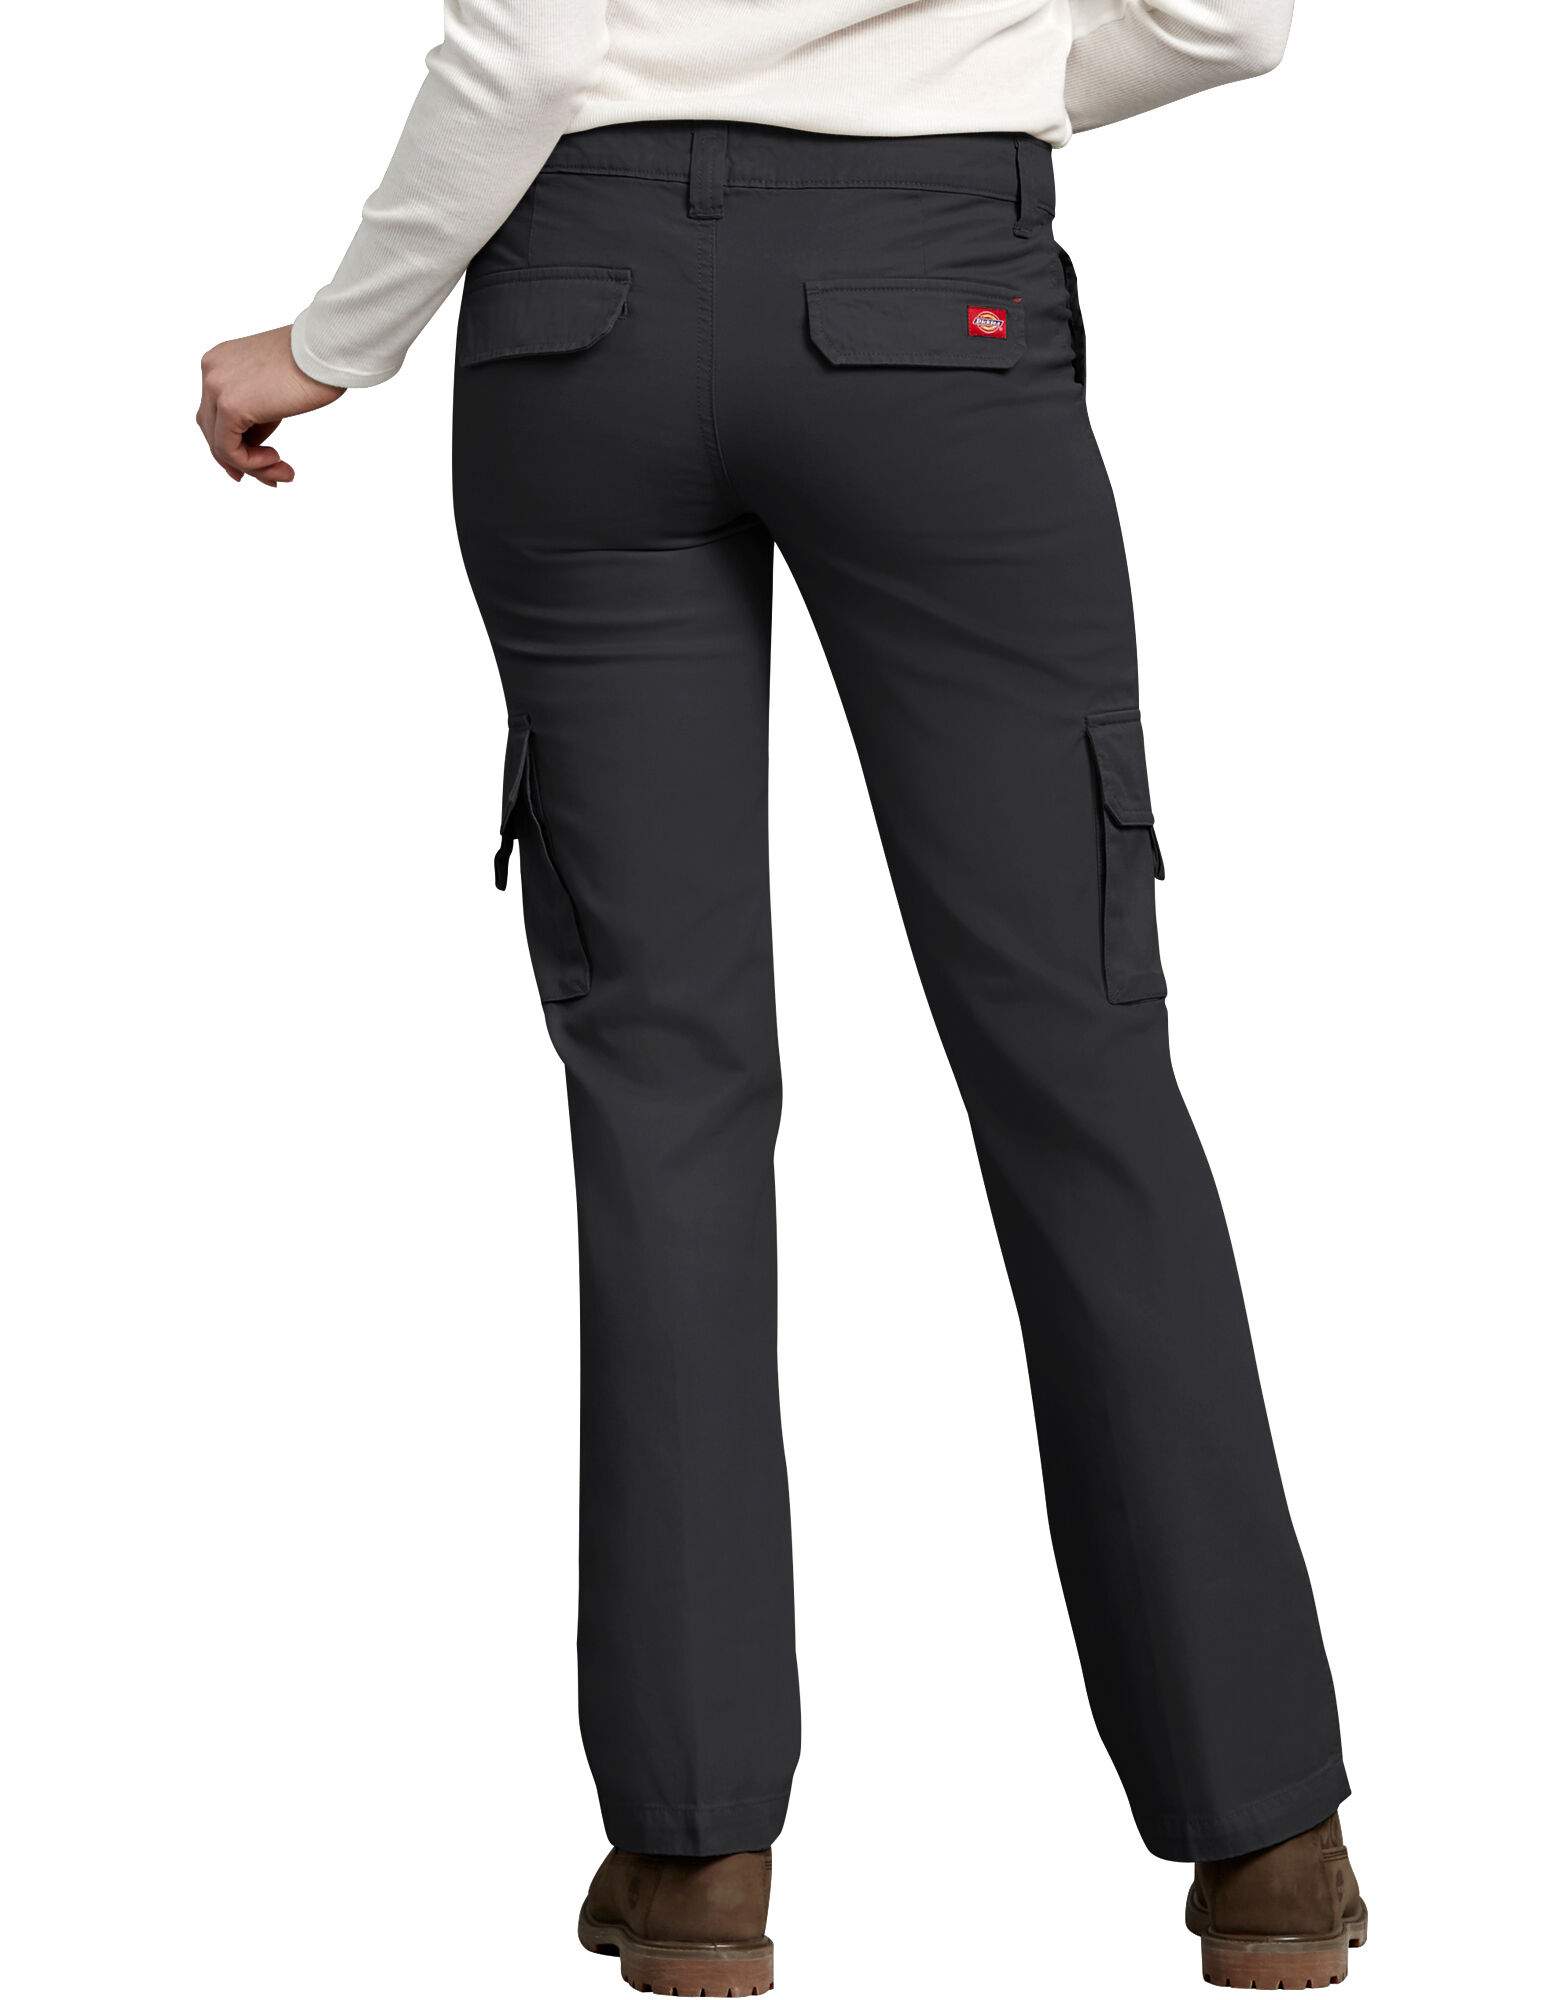 Cool Black Womenu0026#39;s Relaxed Fit Straight Leg Stretch Twill Pants | Dickies